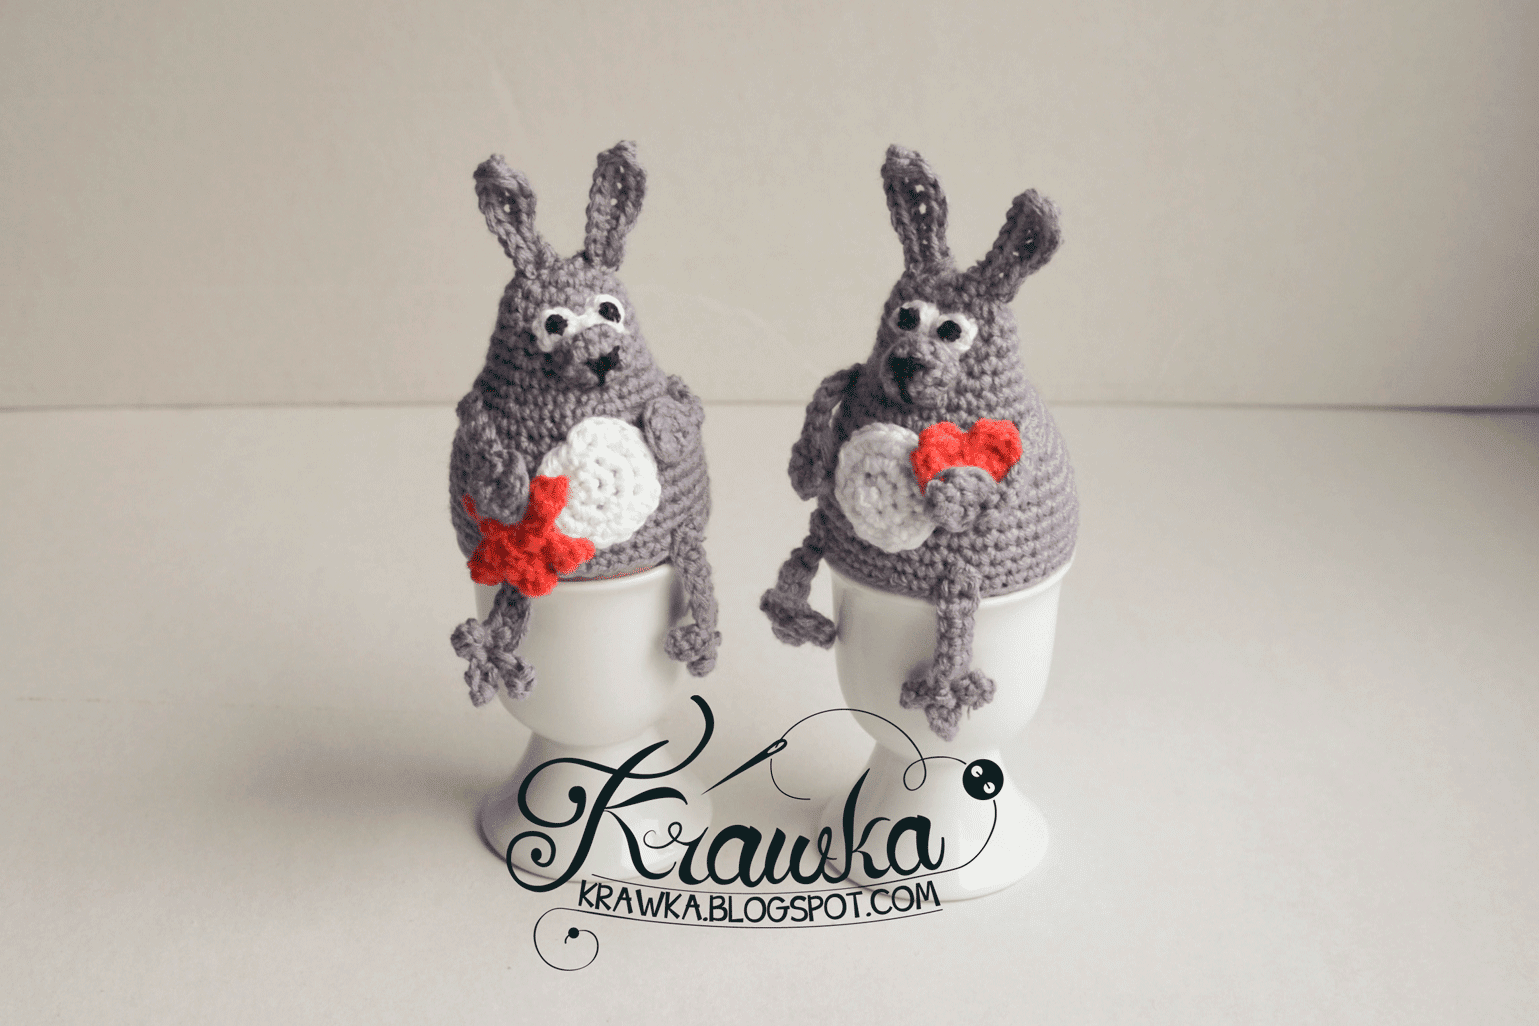 ocieplacze na jajka wielkanocne ozdoby na szydełku,szare króliki, zające trzymające serduszko i gwiazdkę szydełko amigumumi, egg warmers grey rabbits with hearts easter gifts decoration crochet